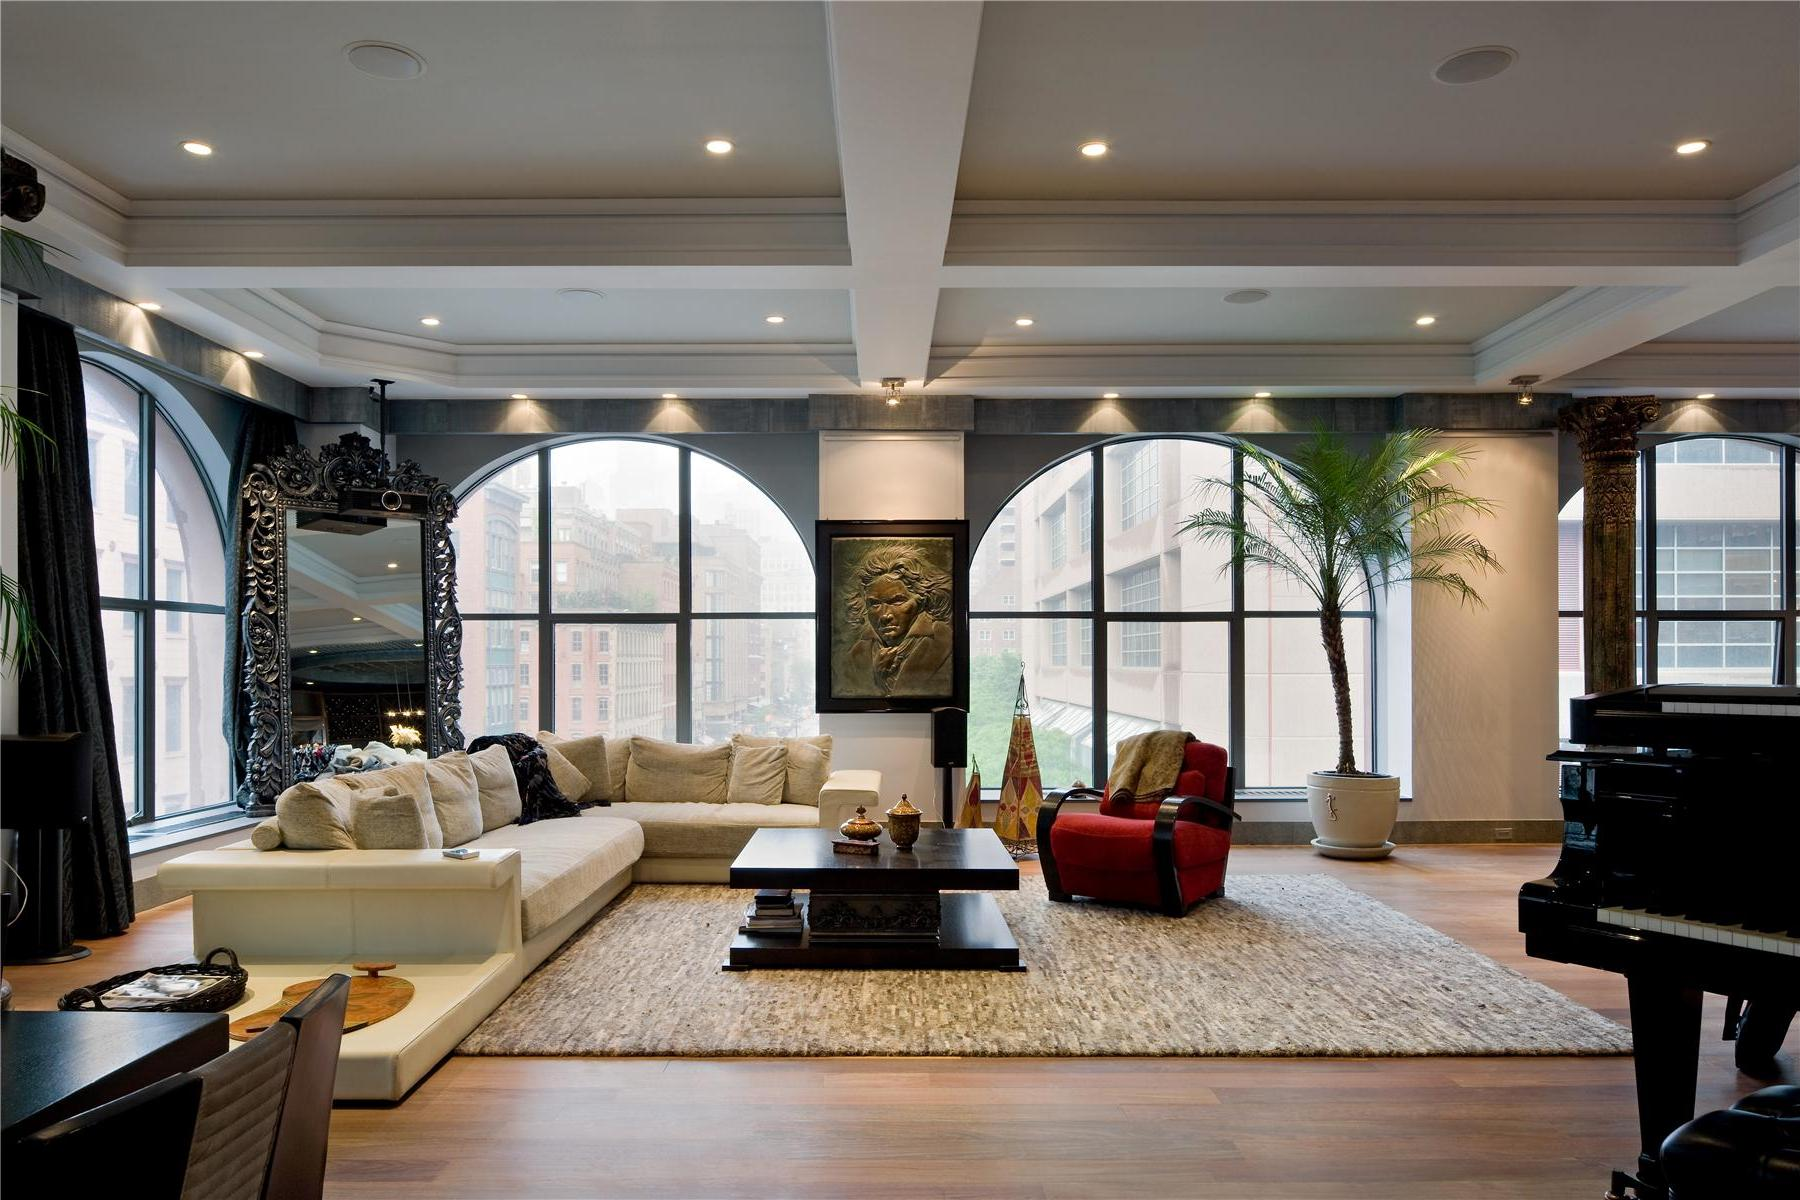 Two luxurious lofts on sale in tribeca new york for Apartments in tribeca nyc